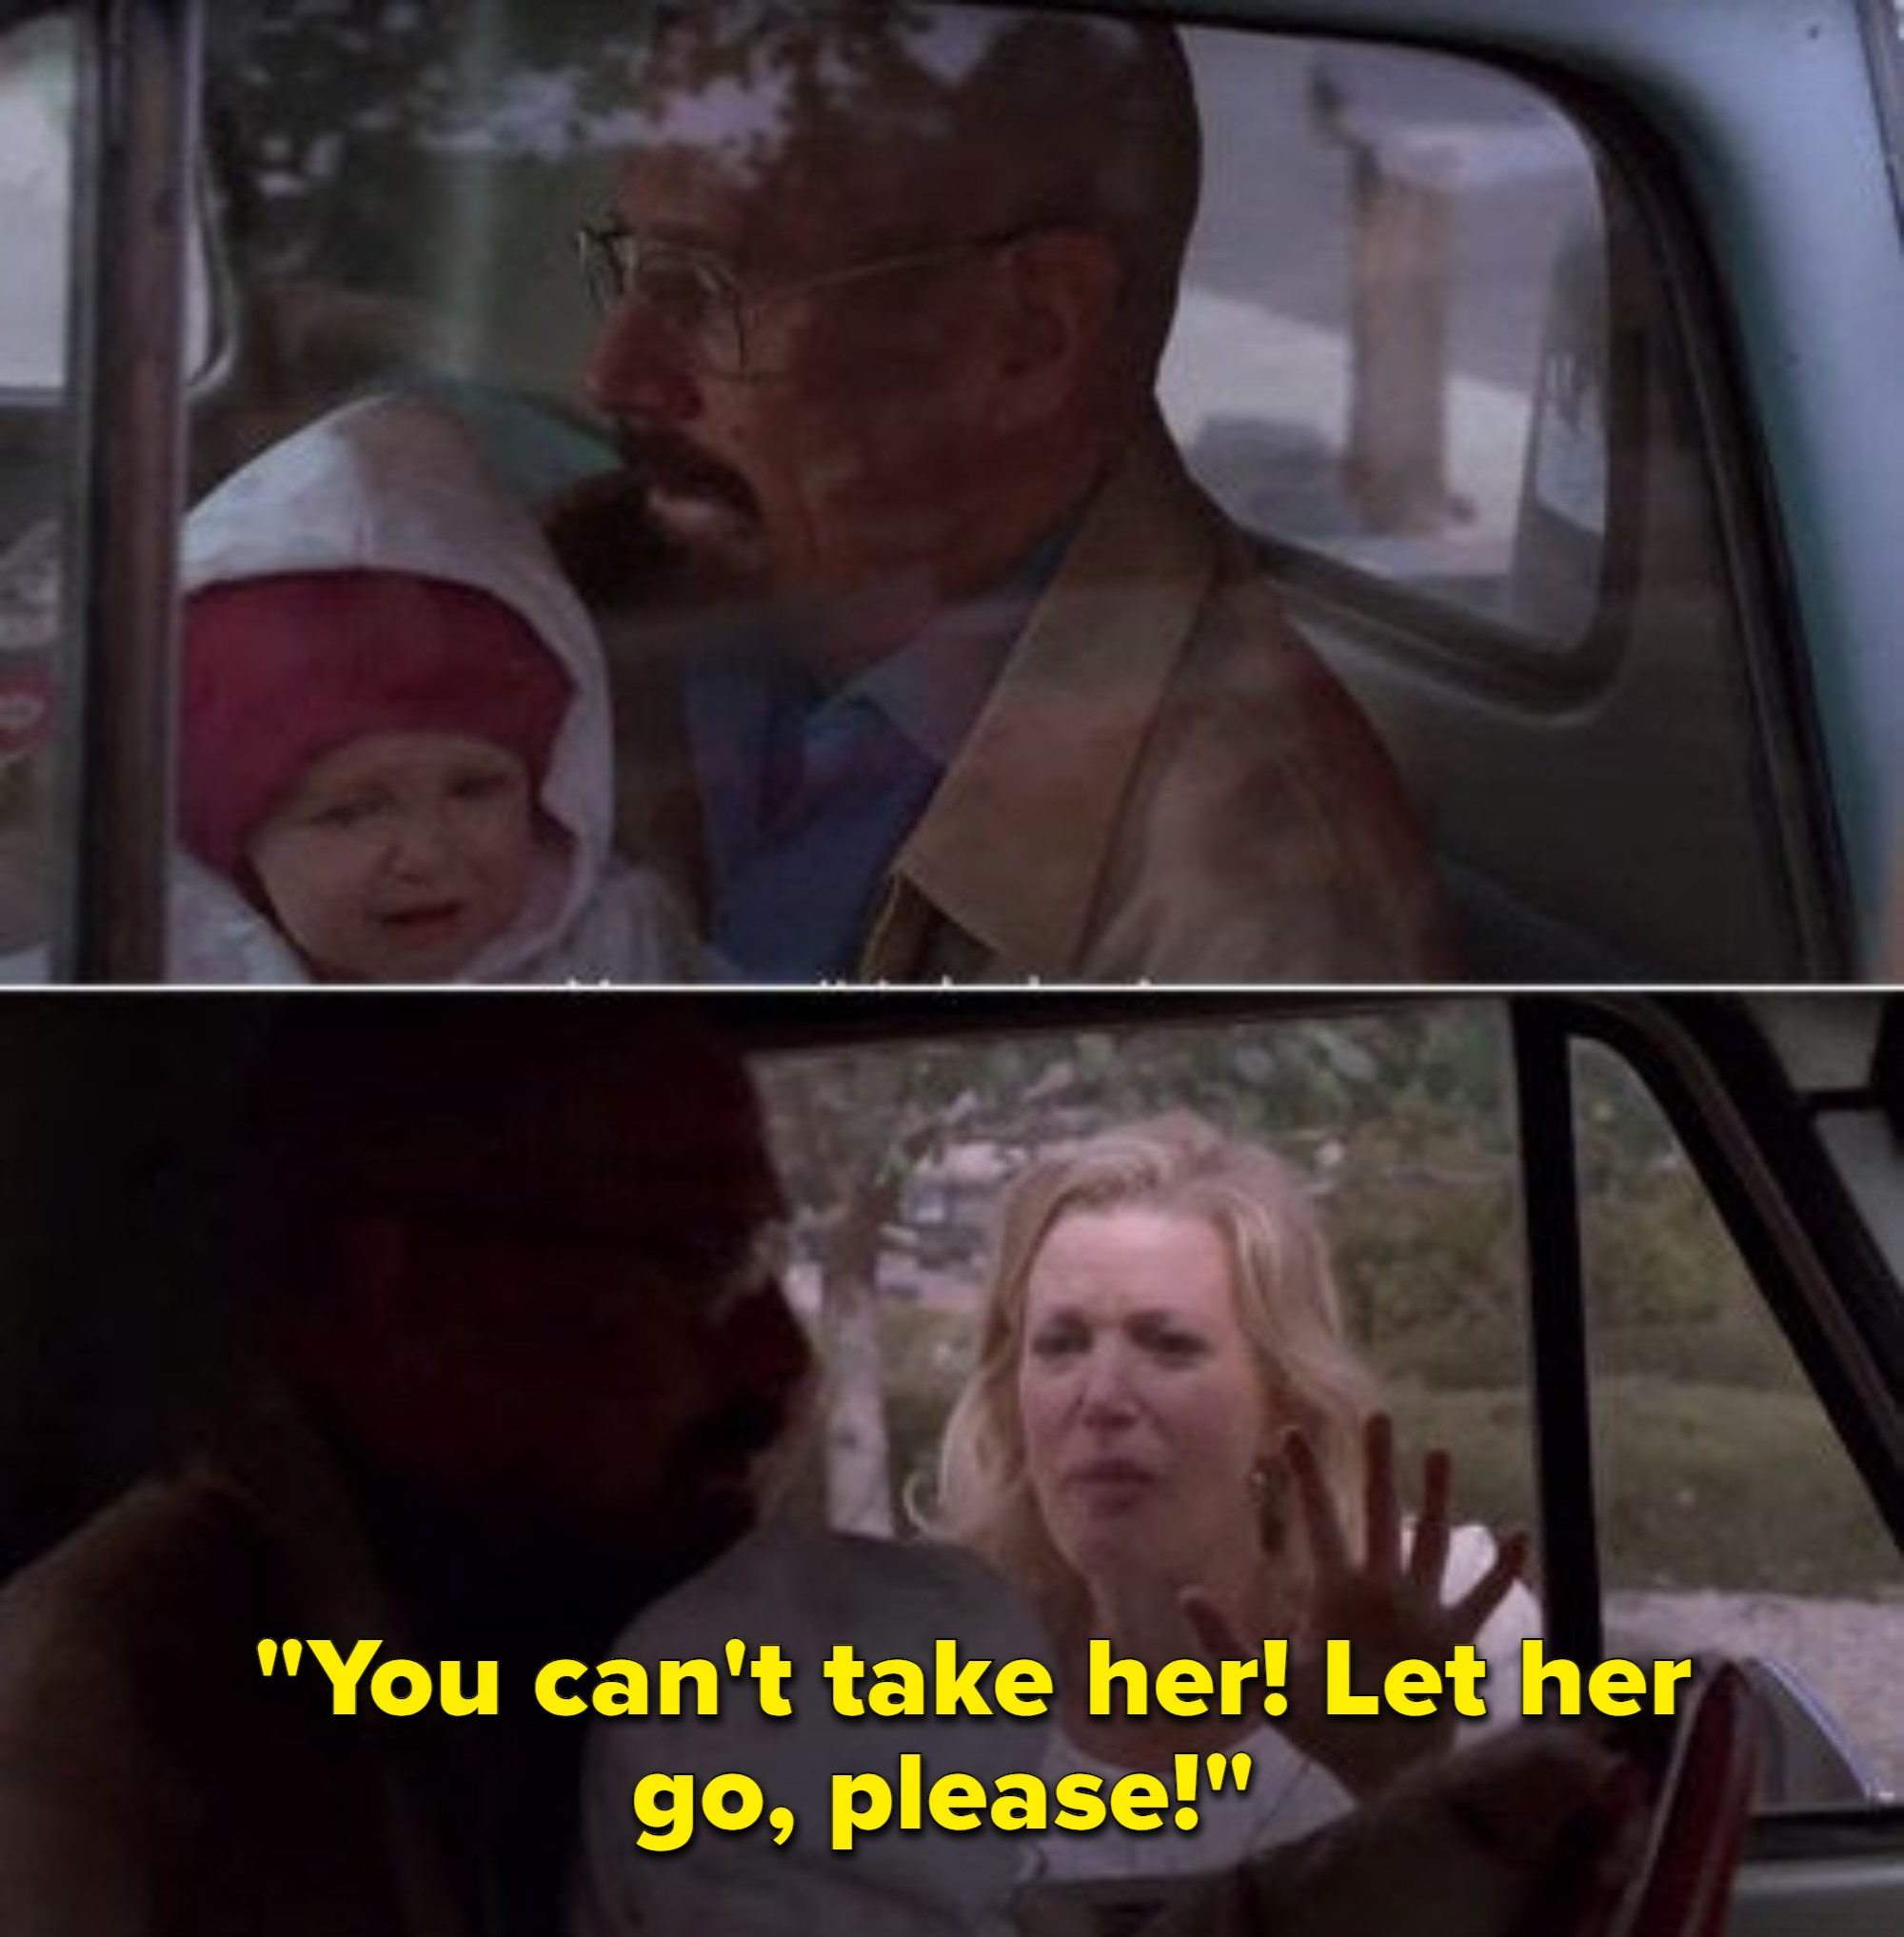 Walter about to drive off with his baby sitting on his lap while Skyler is outside banging on the window begging him not to take the baby